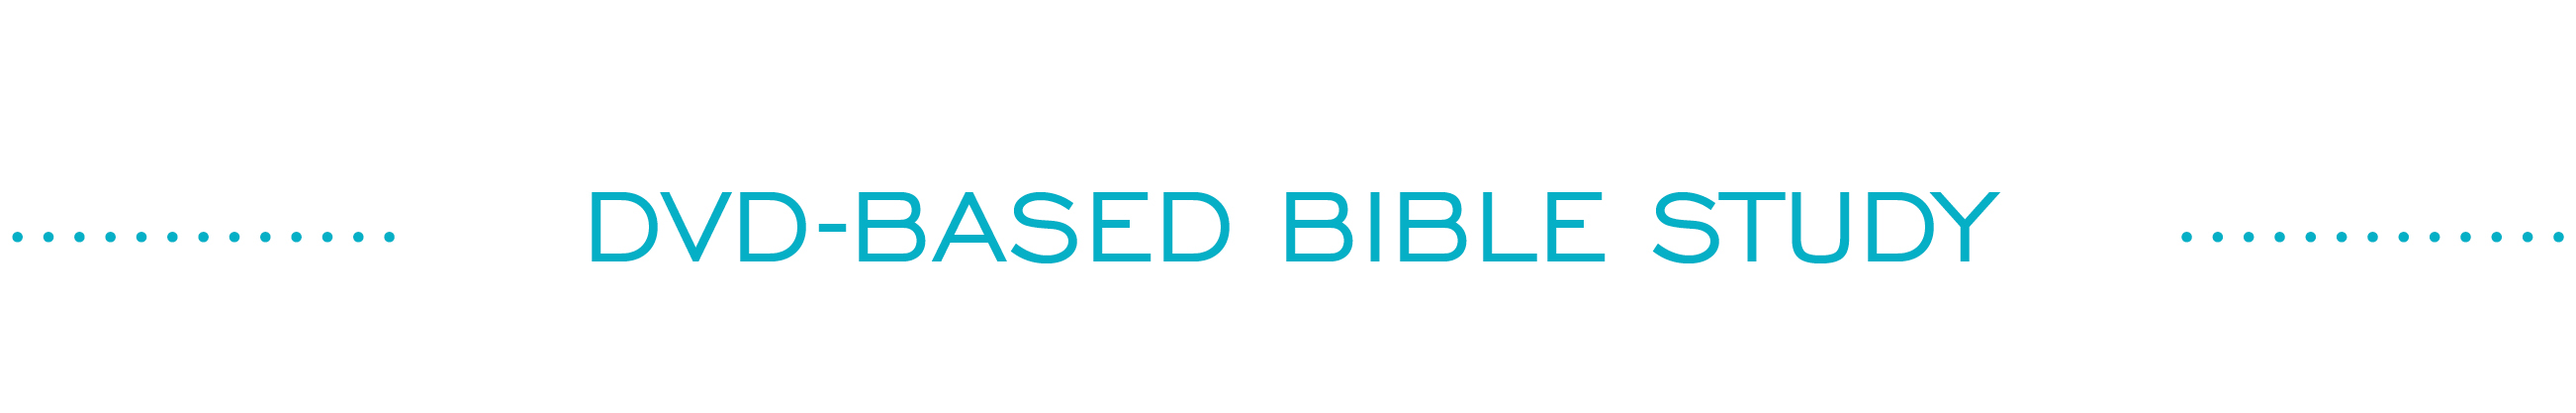 video-based bible study header image